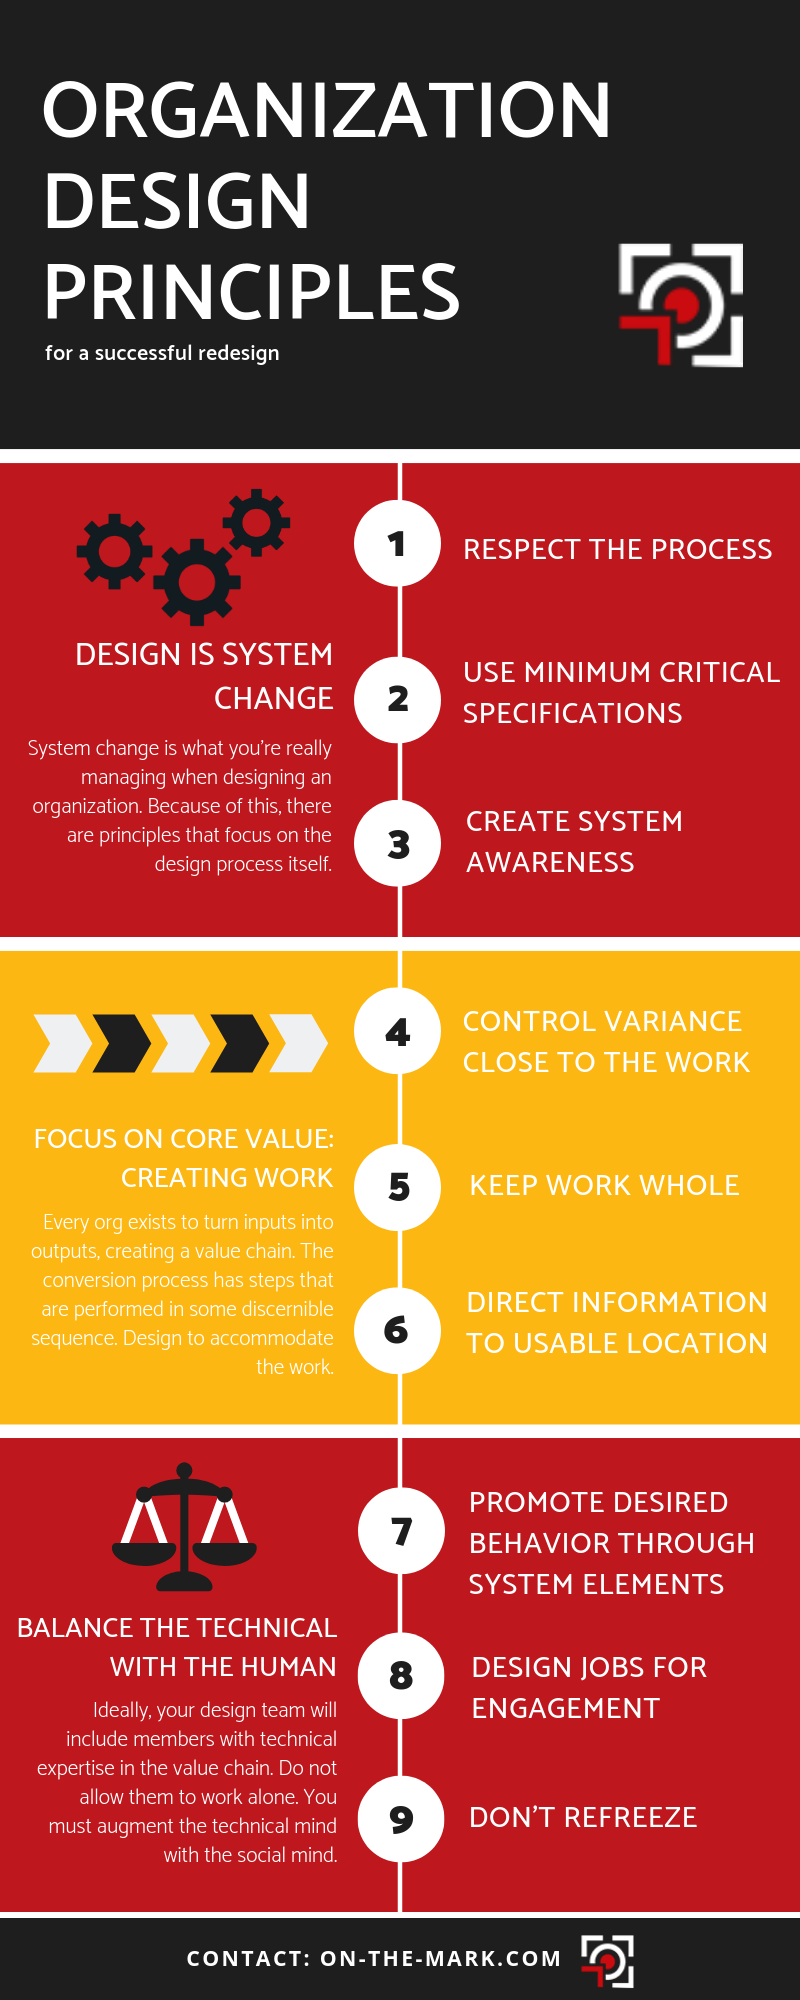 Organization Design Principles For A Successful Redesign On The Mark